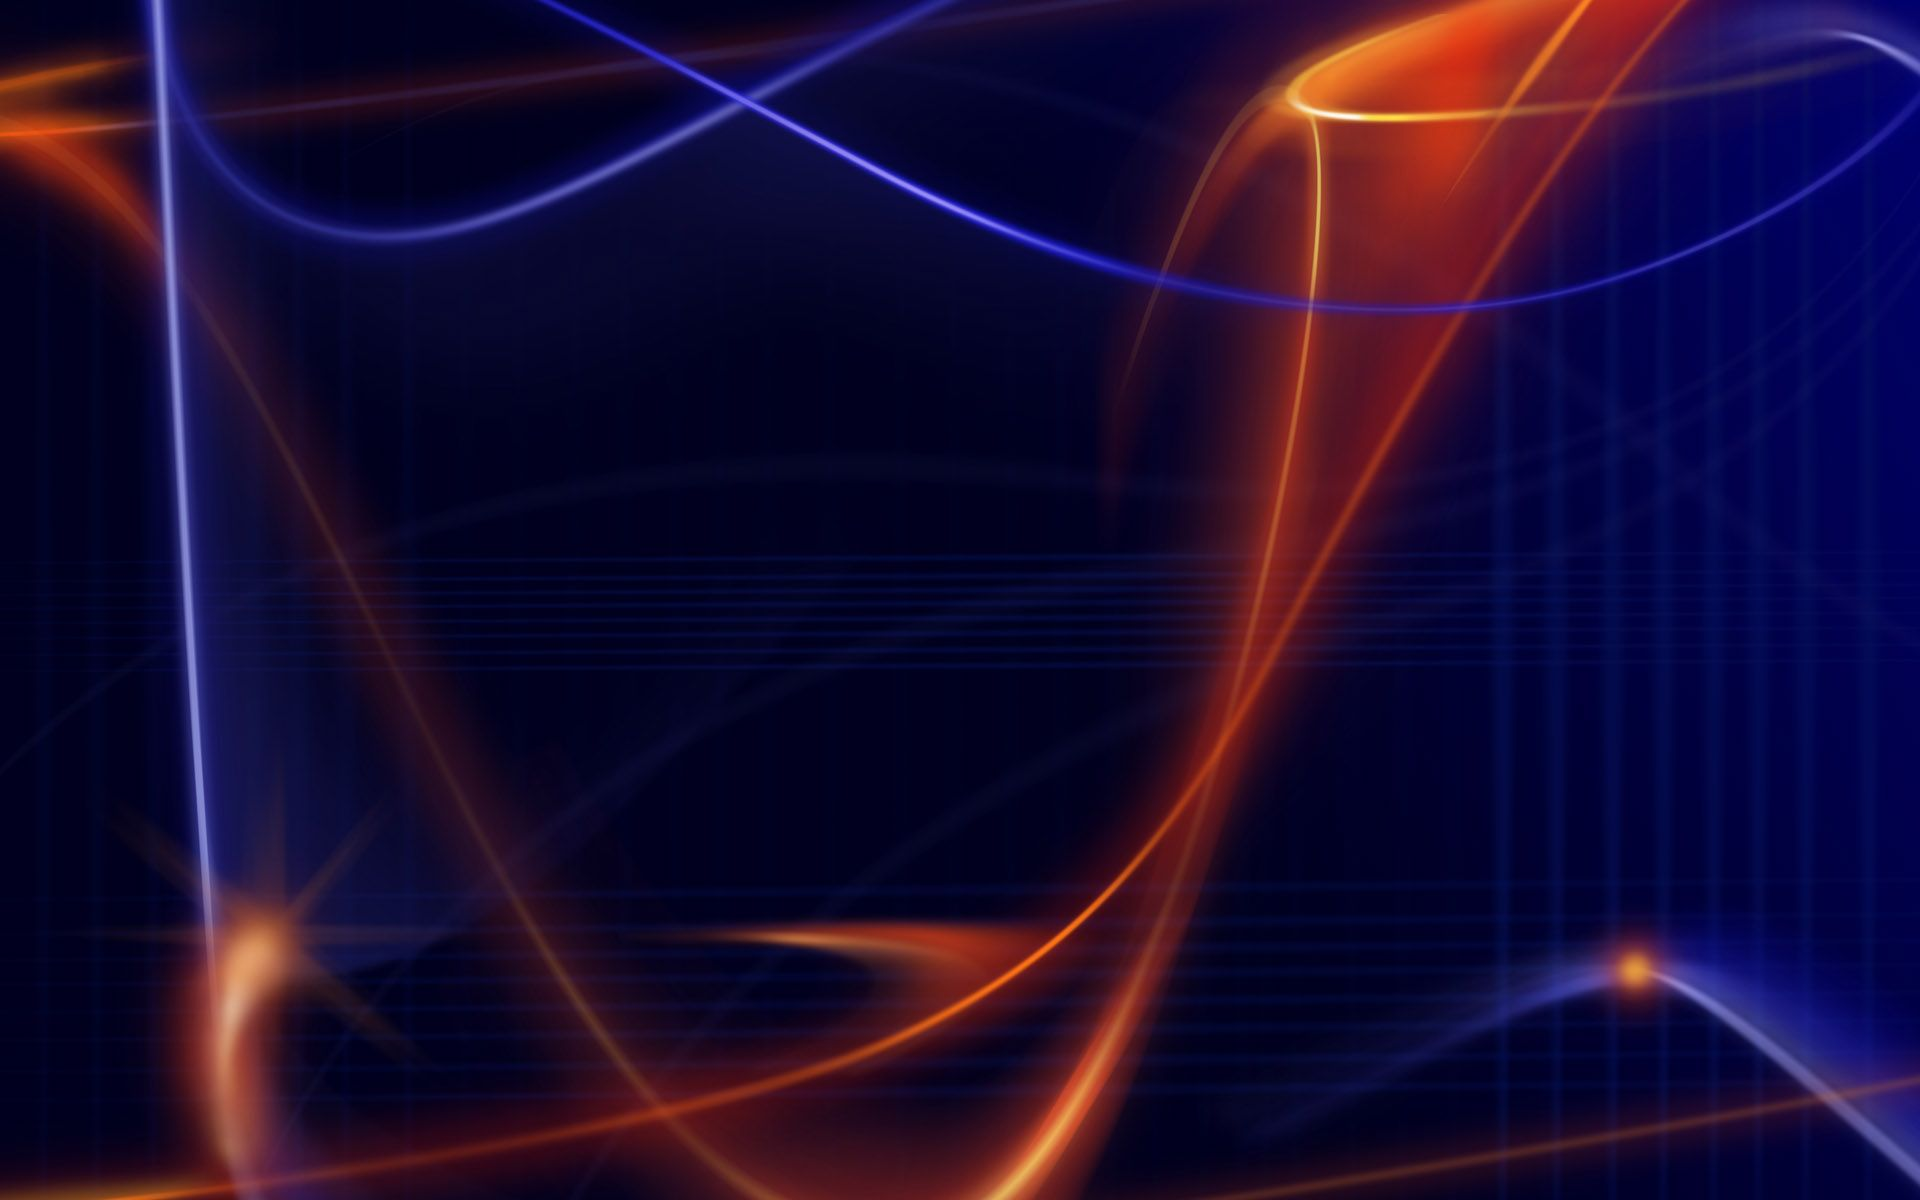 3d Wallpaper Red Blue 3d Wallpaper Red Red Wallpaper Blue Wallpapers